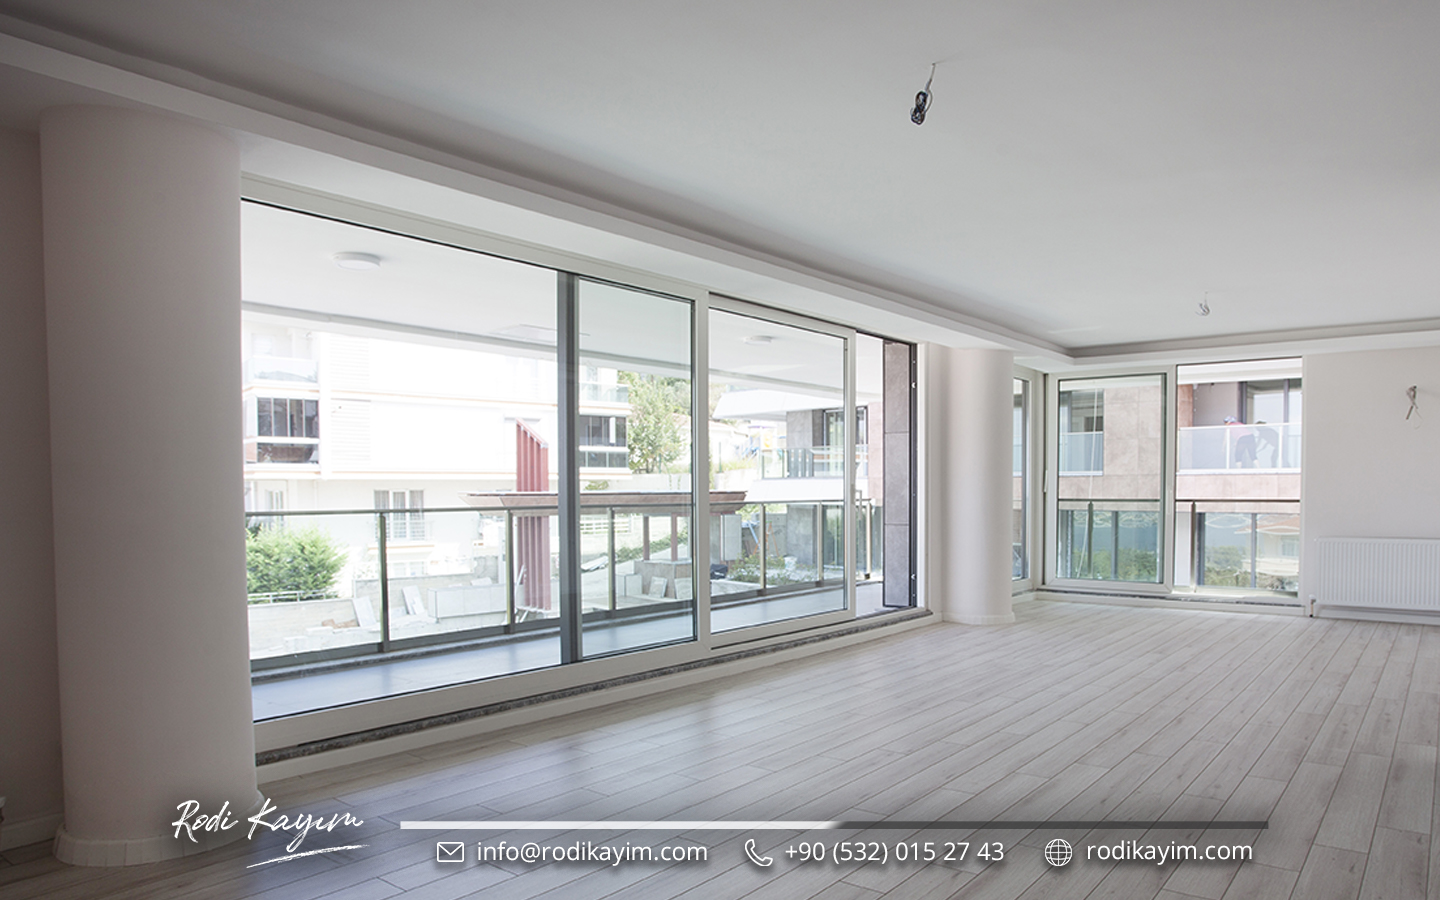 Yildiz Park apartments for sale in istanbul 3